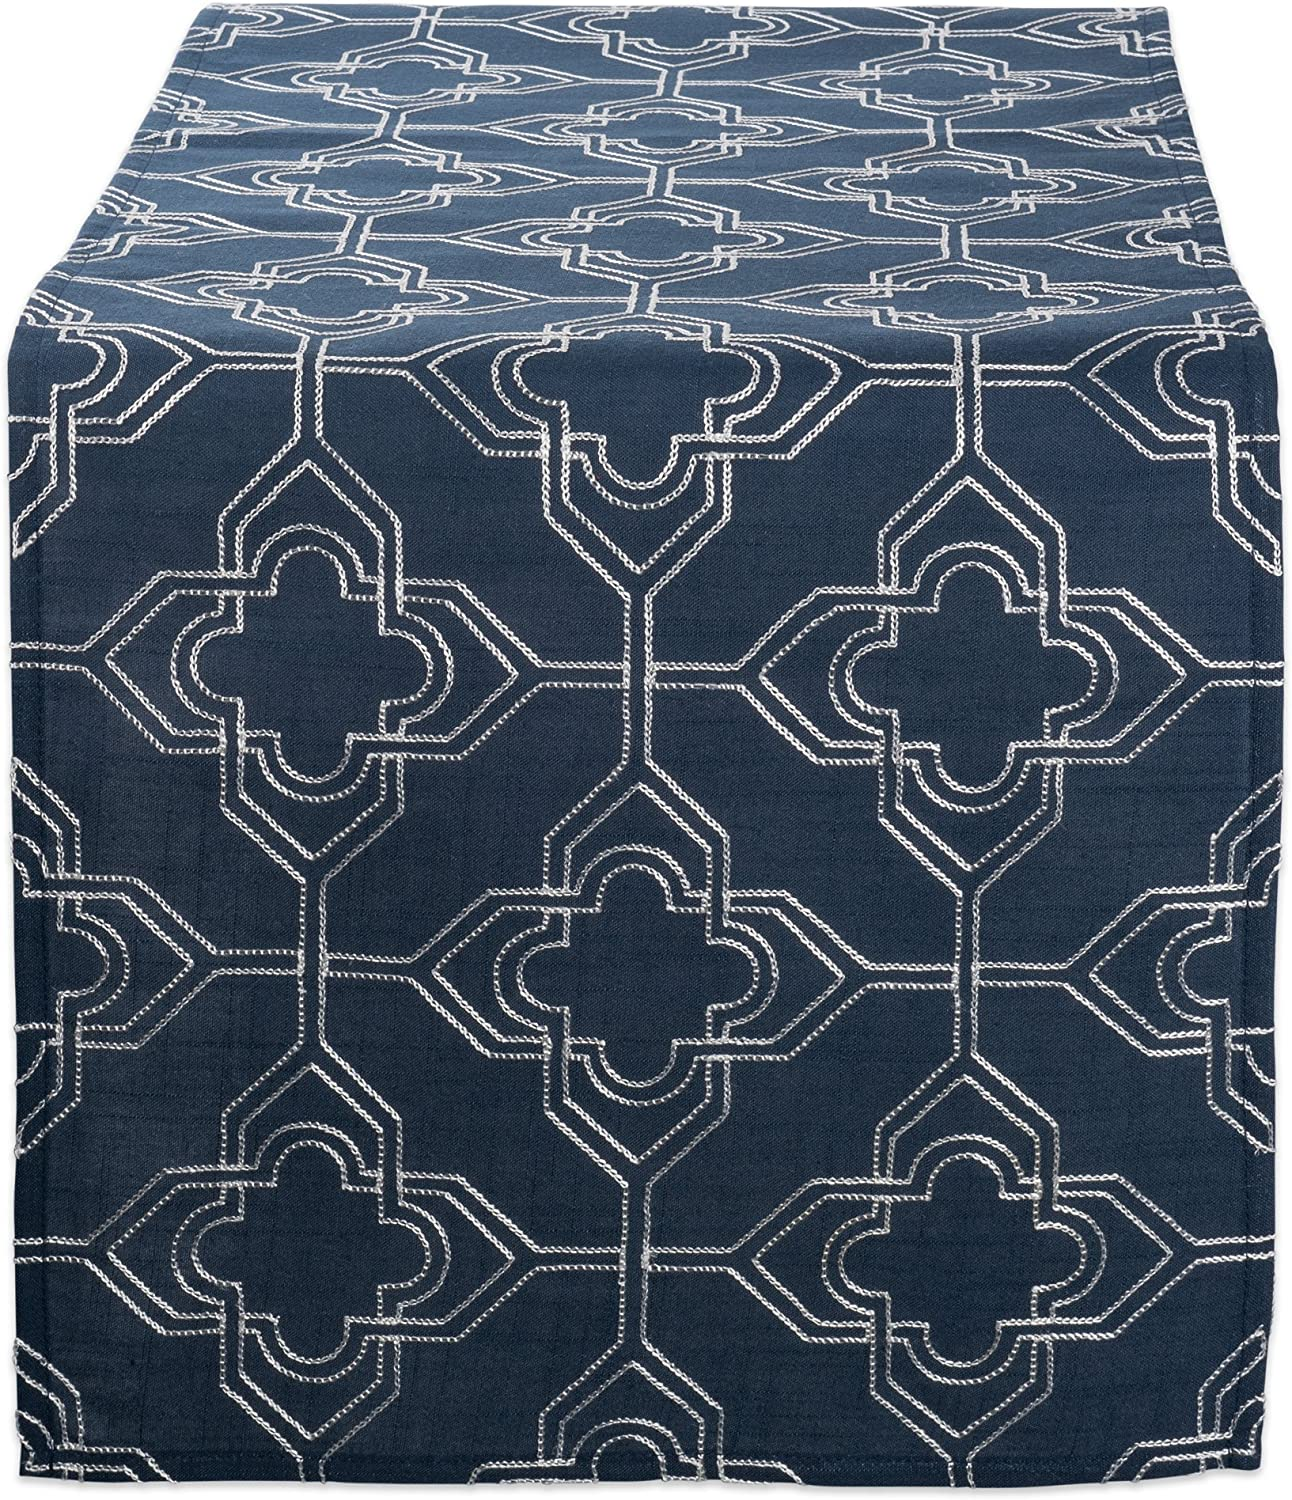 """DII Polyester Embroidered Table Runner for Spring Garden Party, Summer BBQ, Baby Showers and Everyday Use - 14x70"""", Lattice on Navy Base"""